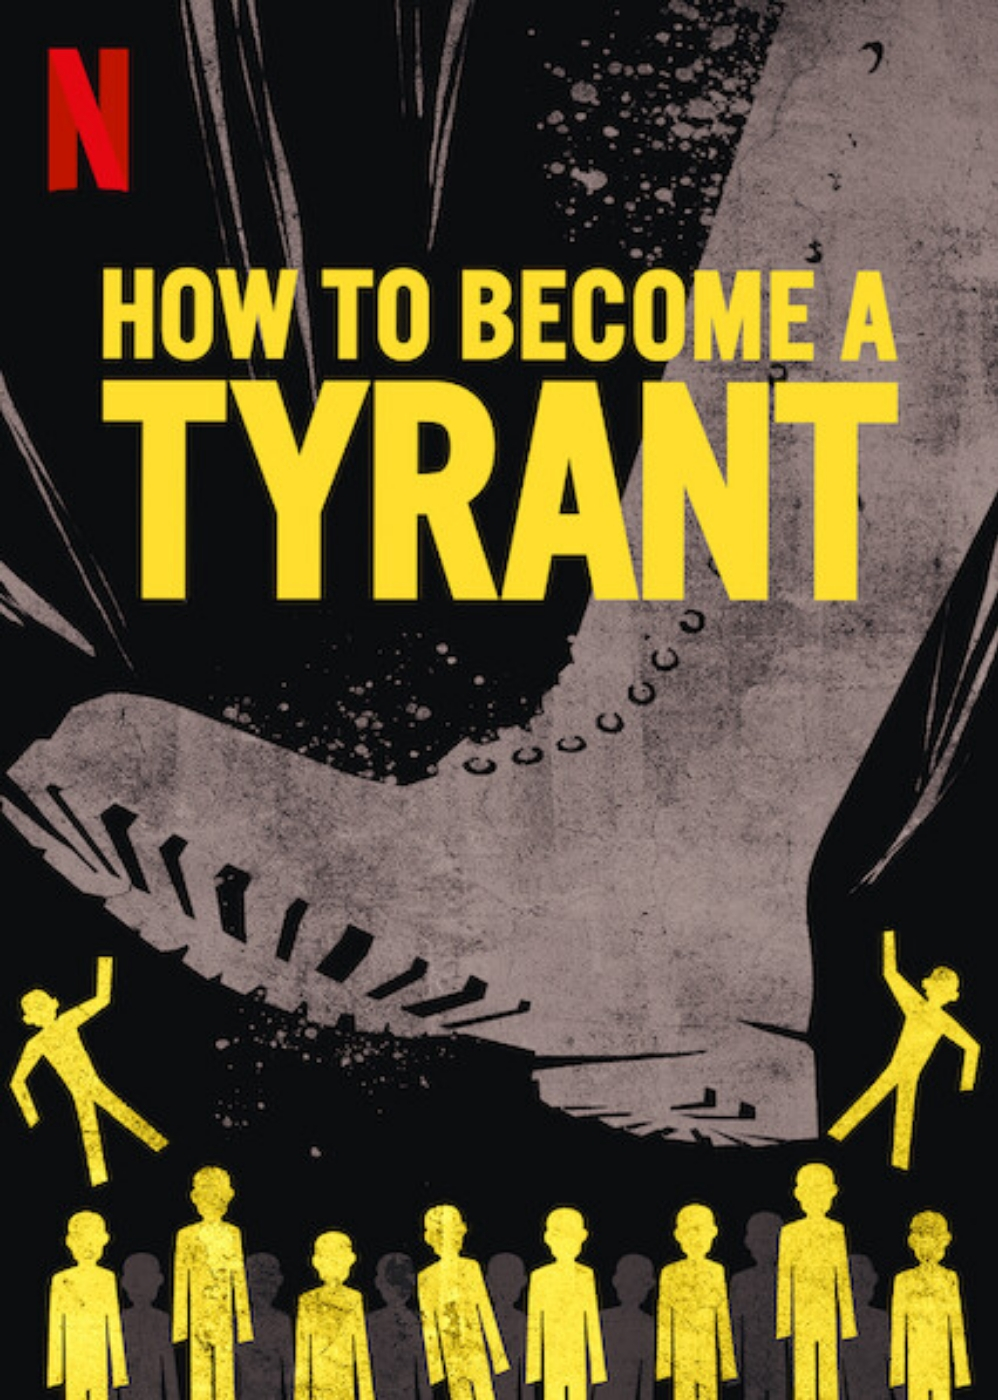 The Netflix documentary 'How To Become A Tyrant' reveals secrets infamous dictators exploited to seize and cling to power